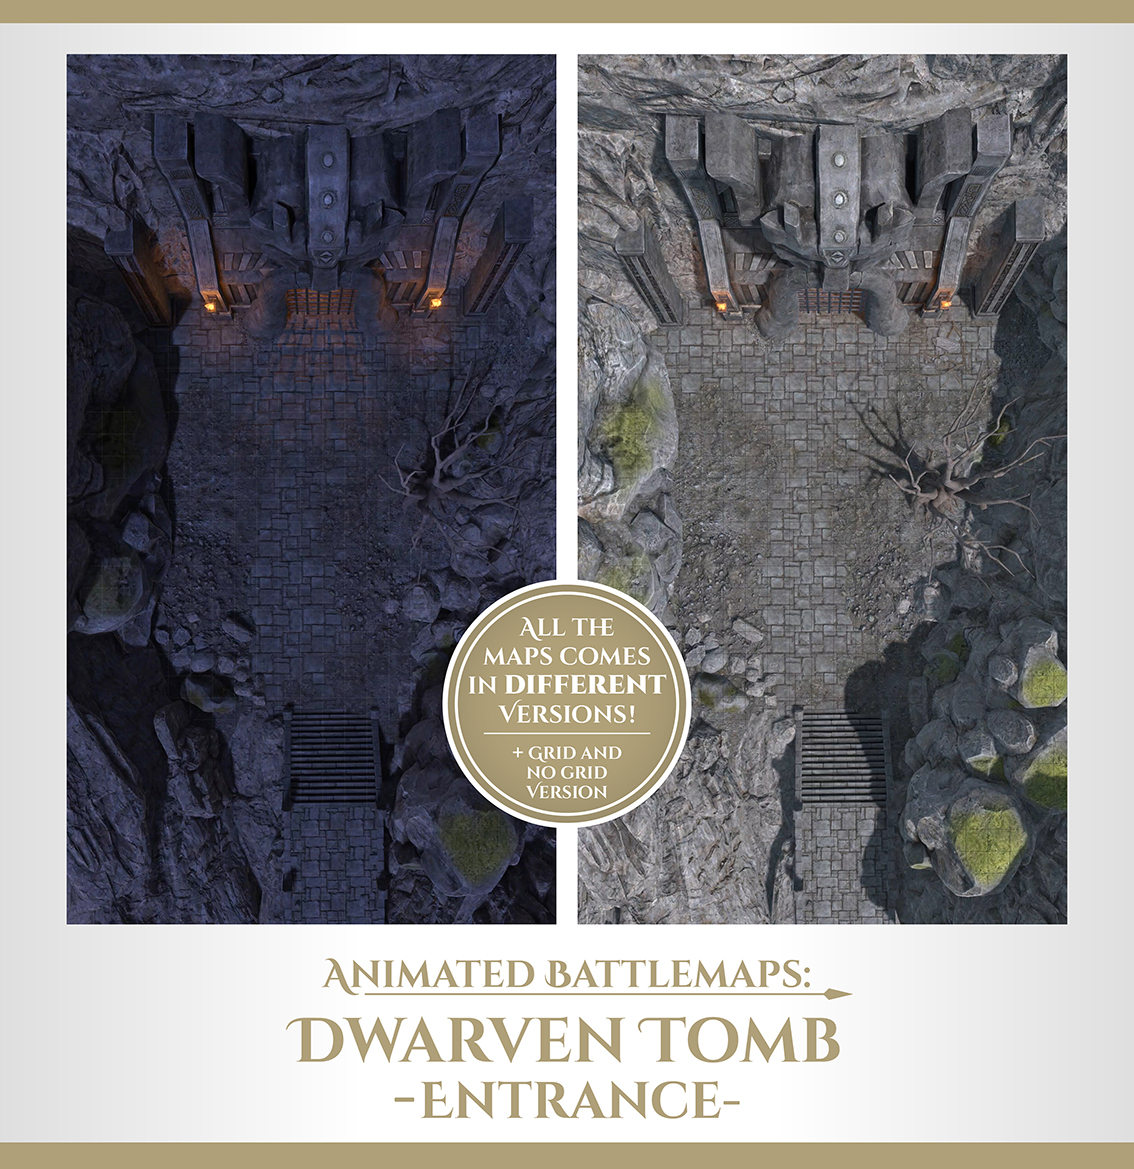 Dwarven Tomb • Entrance